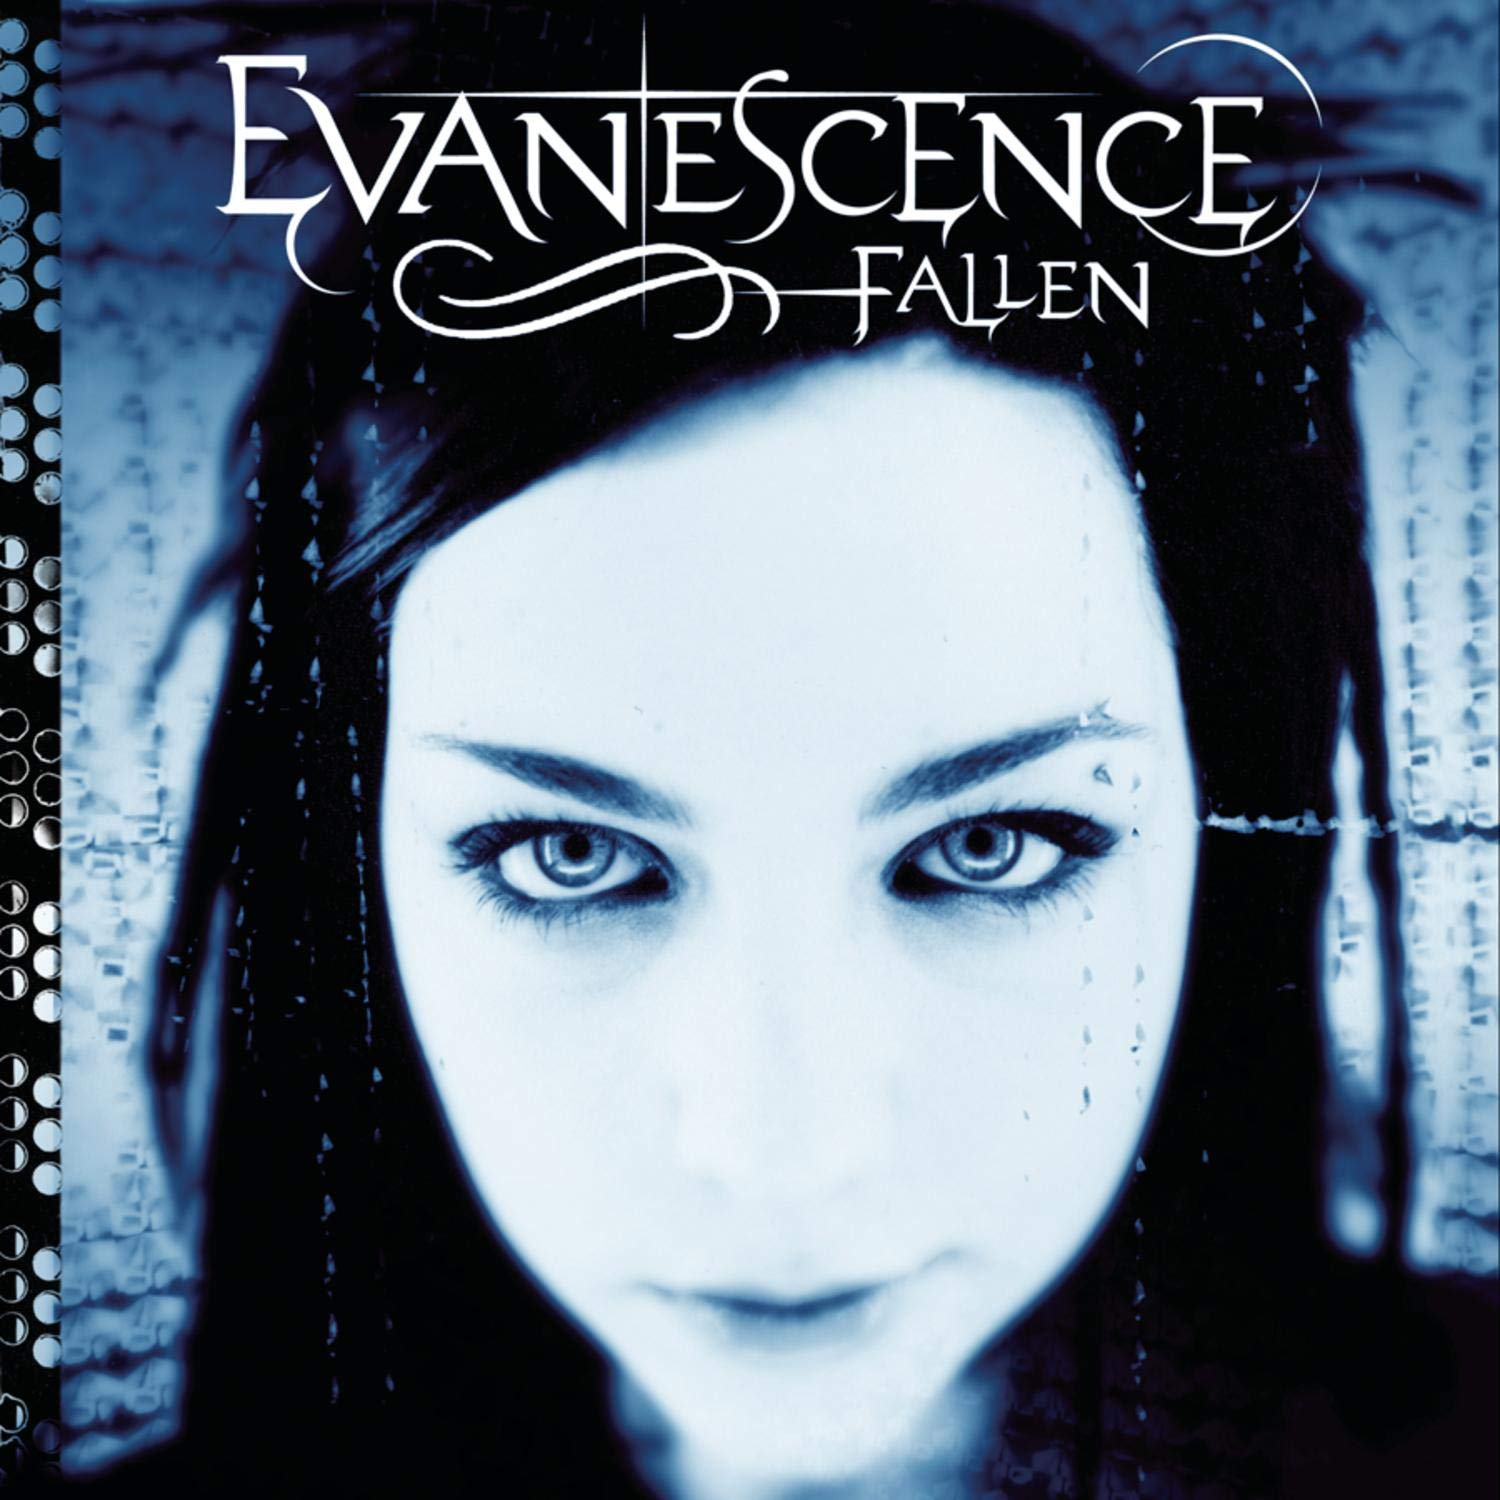 Evanescence - Fallen - Amazon.com Music